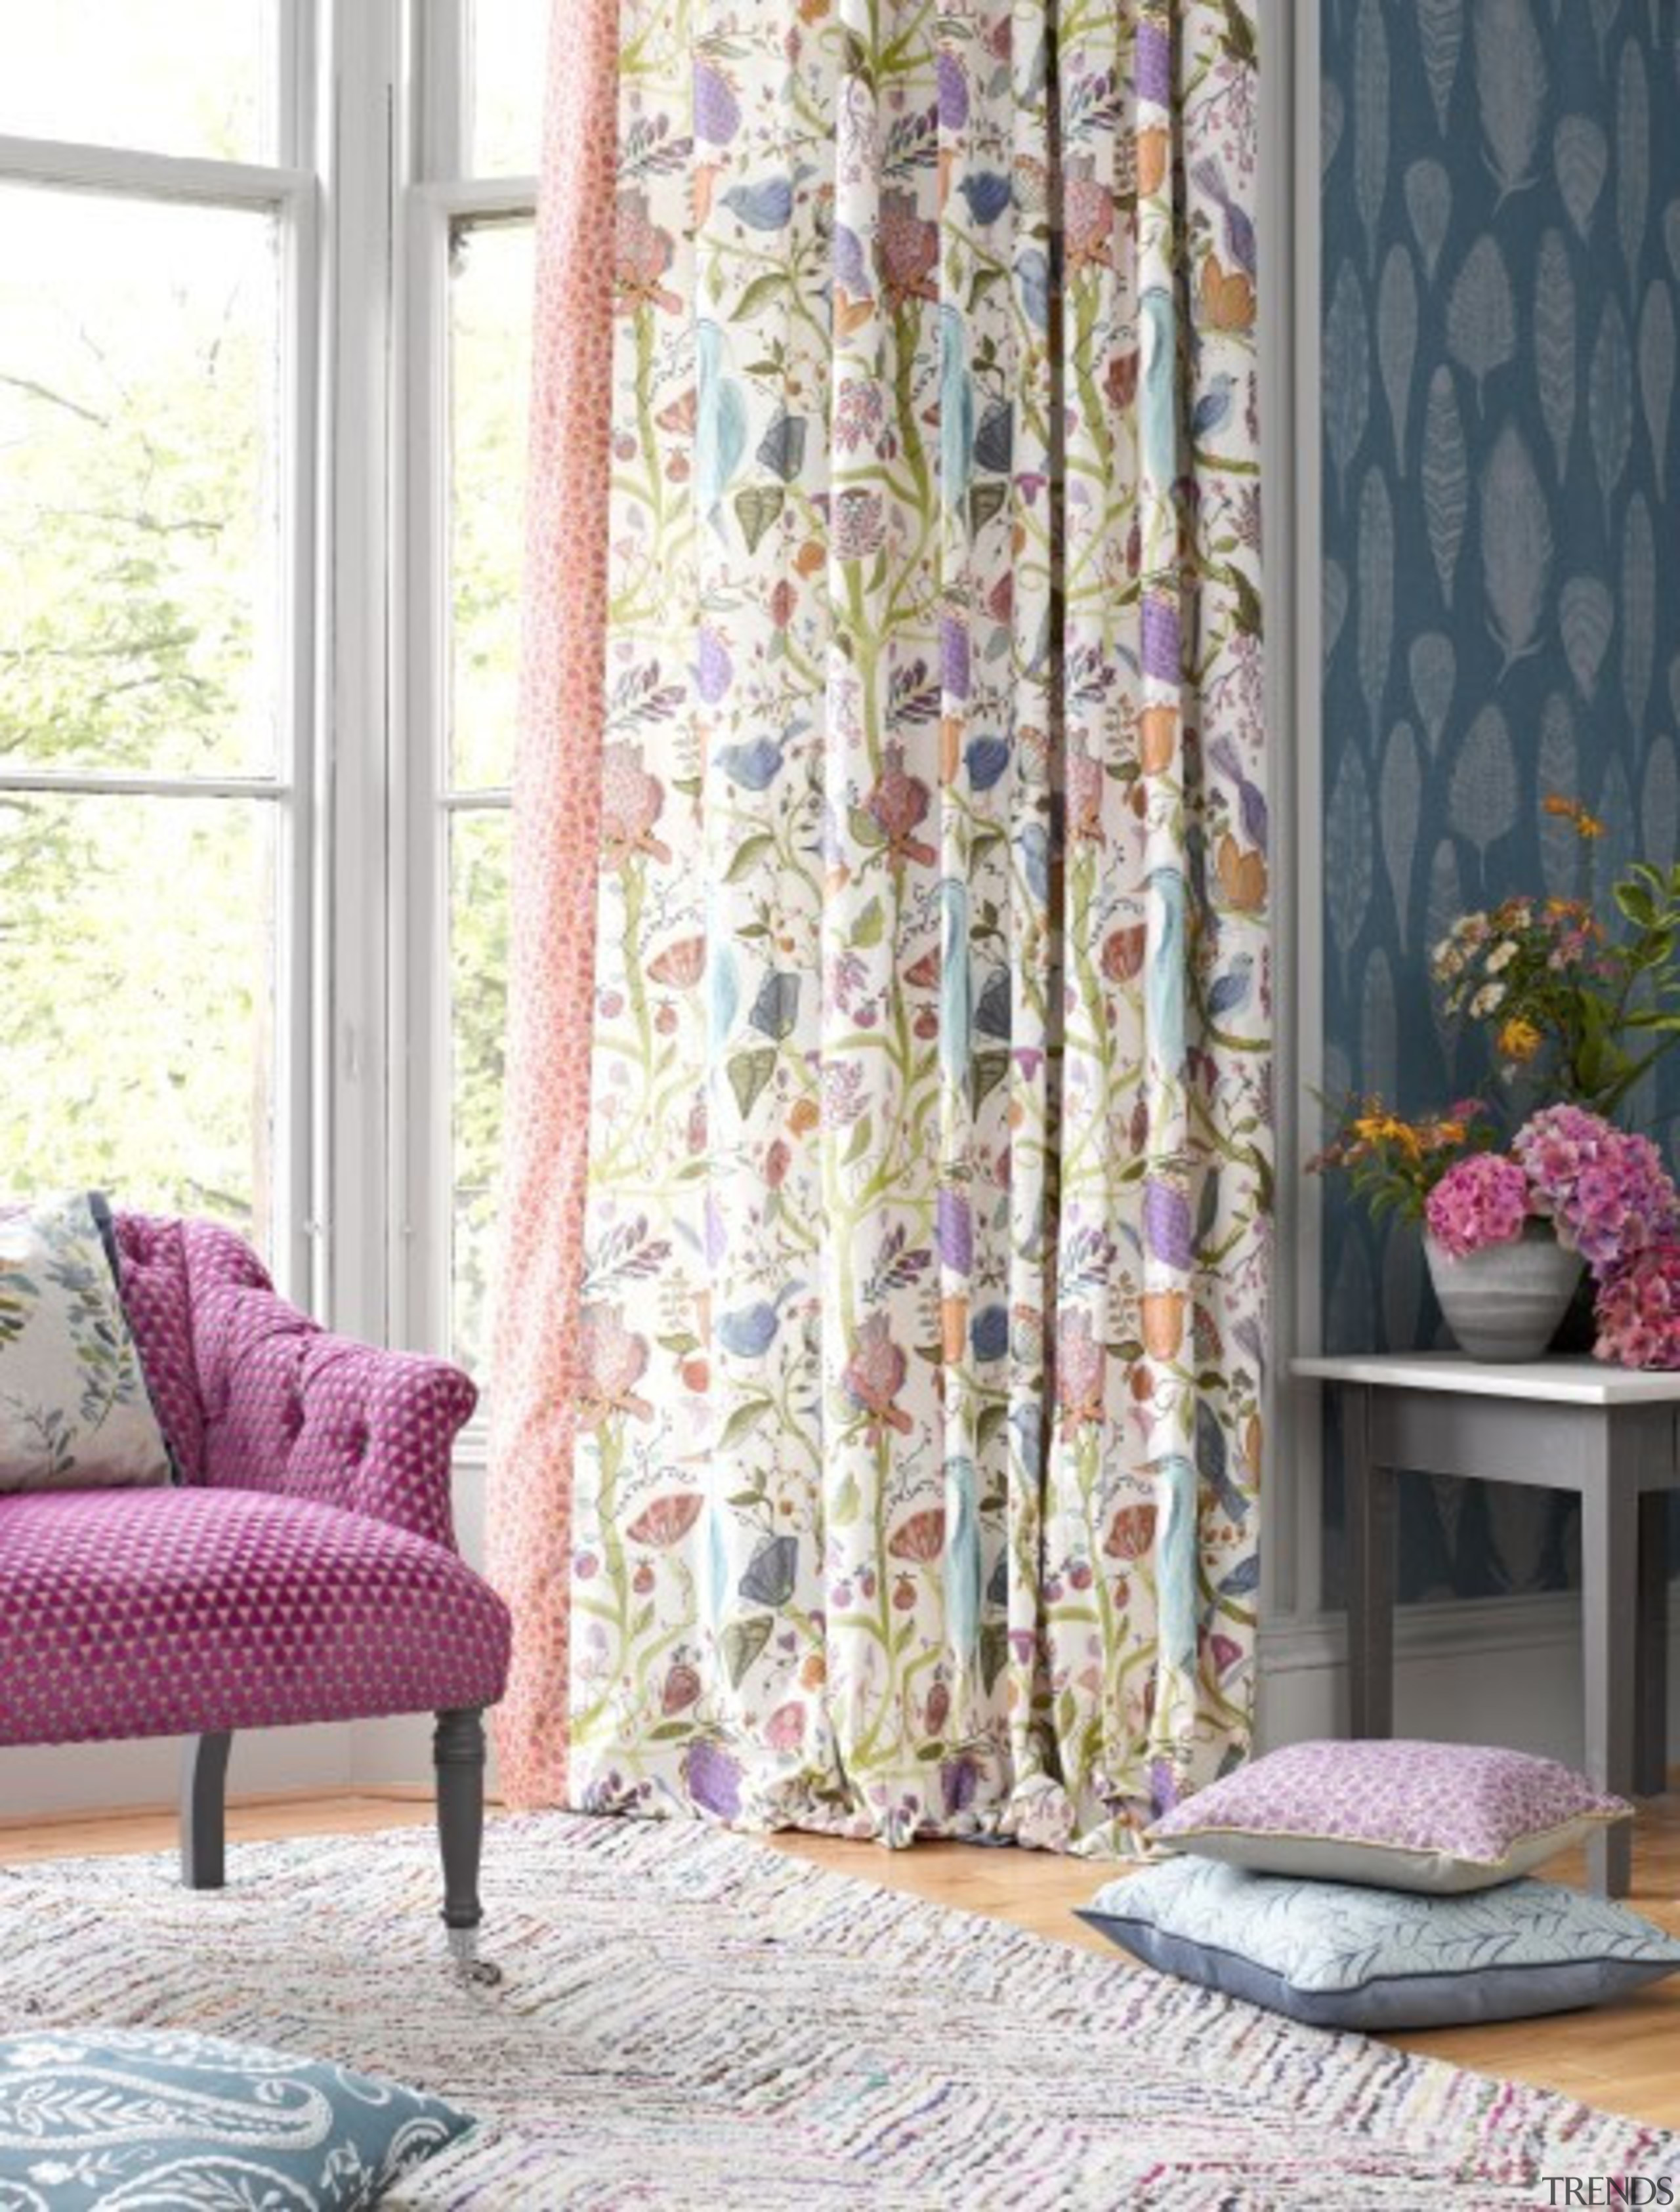 Check out more. curtain, decor, interior design, living room, textile, window, window covering, window treatment, white